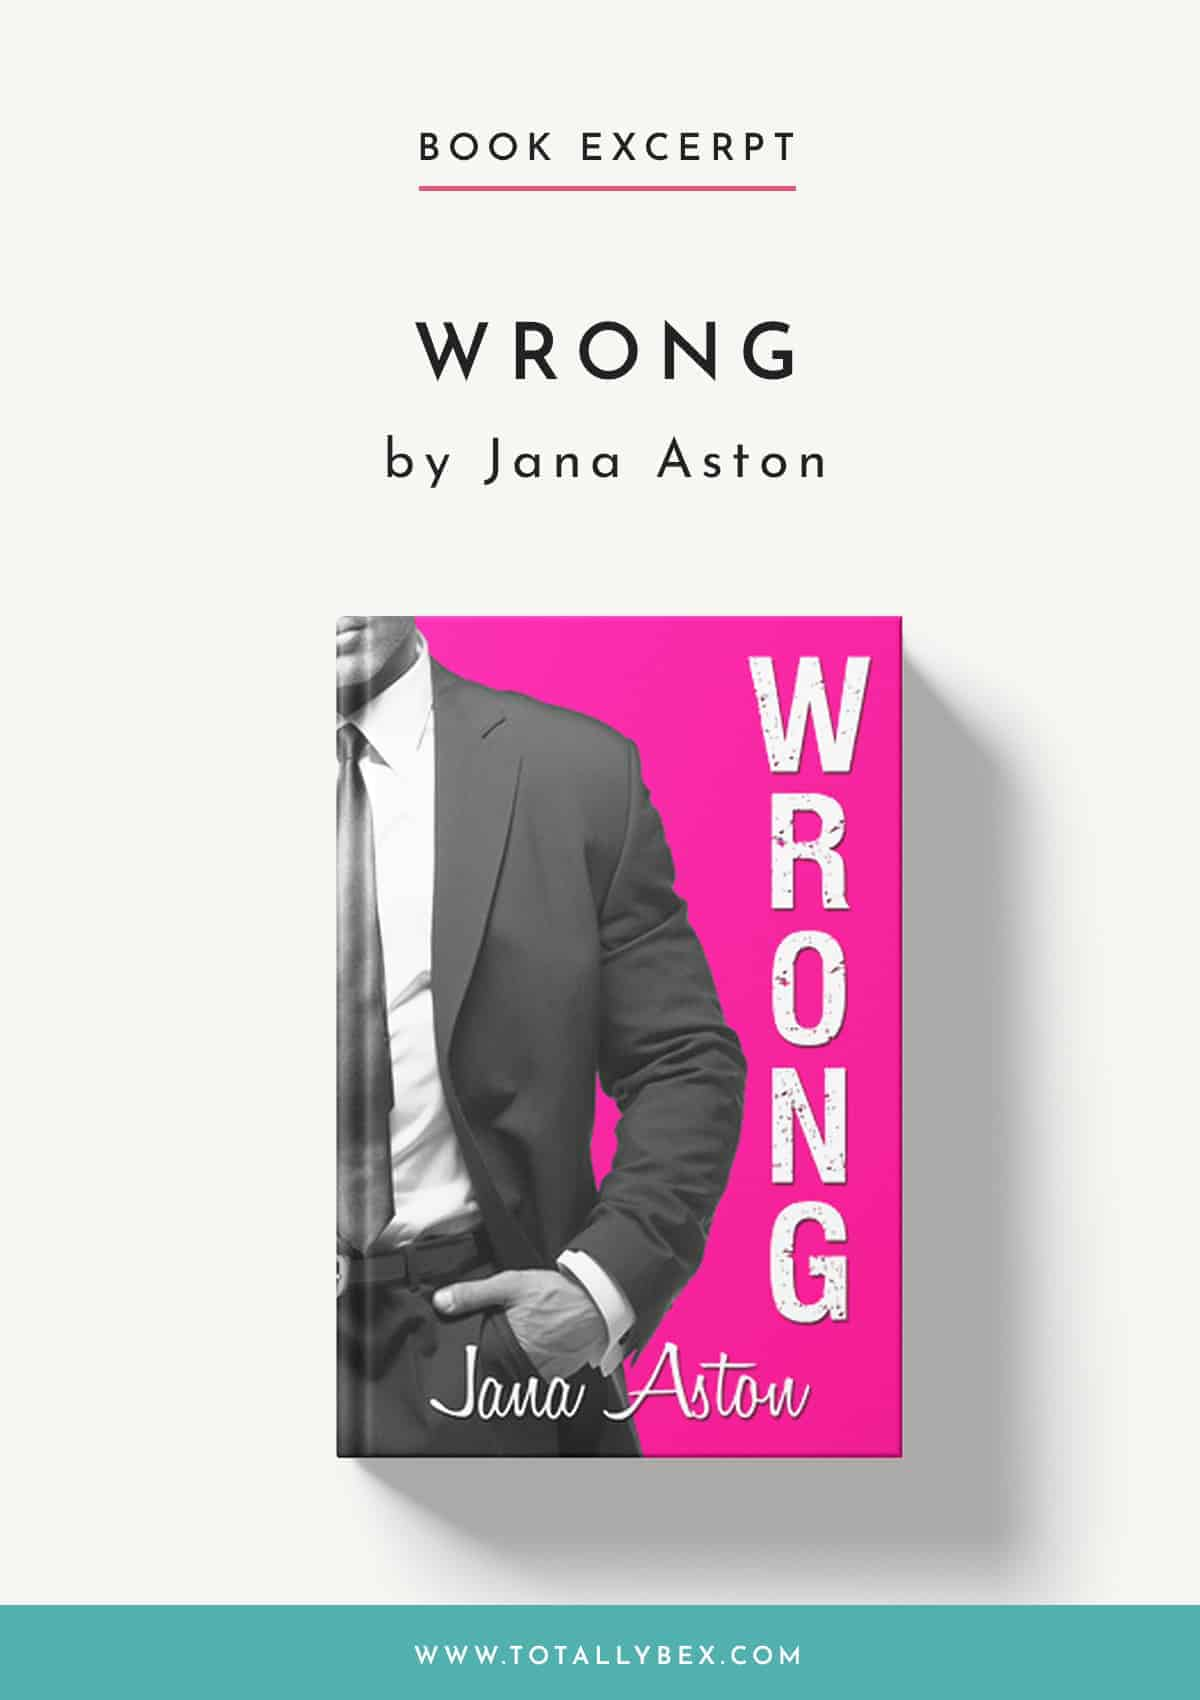 Wrong by Jana Aston-Book Excerpt